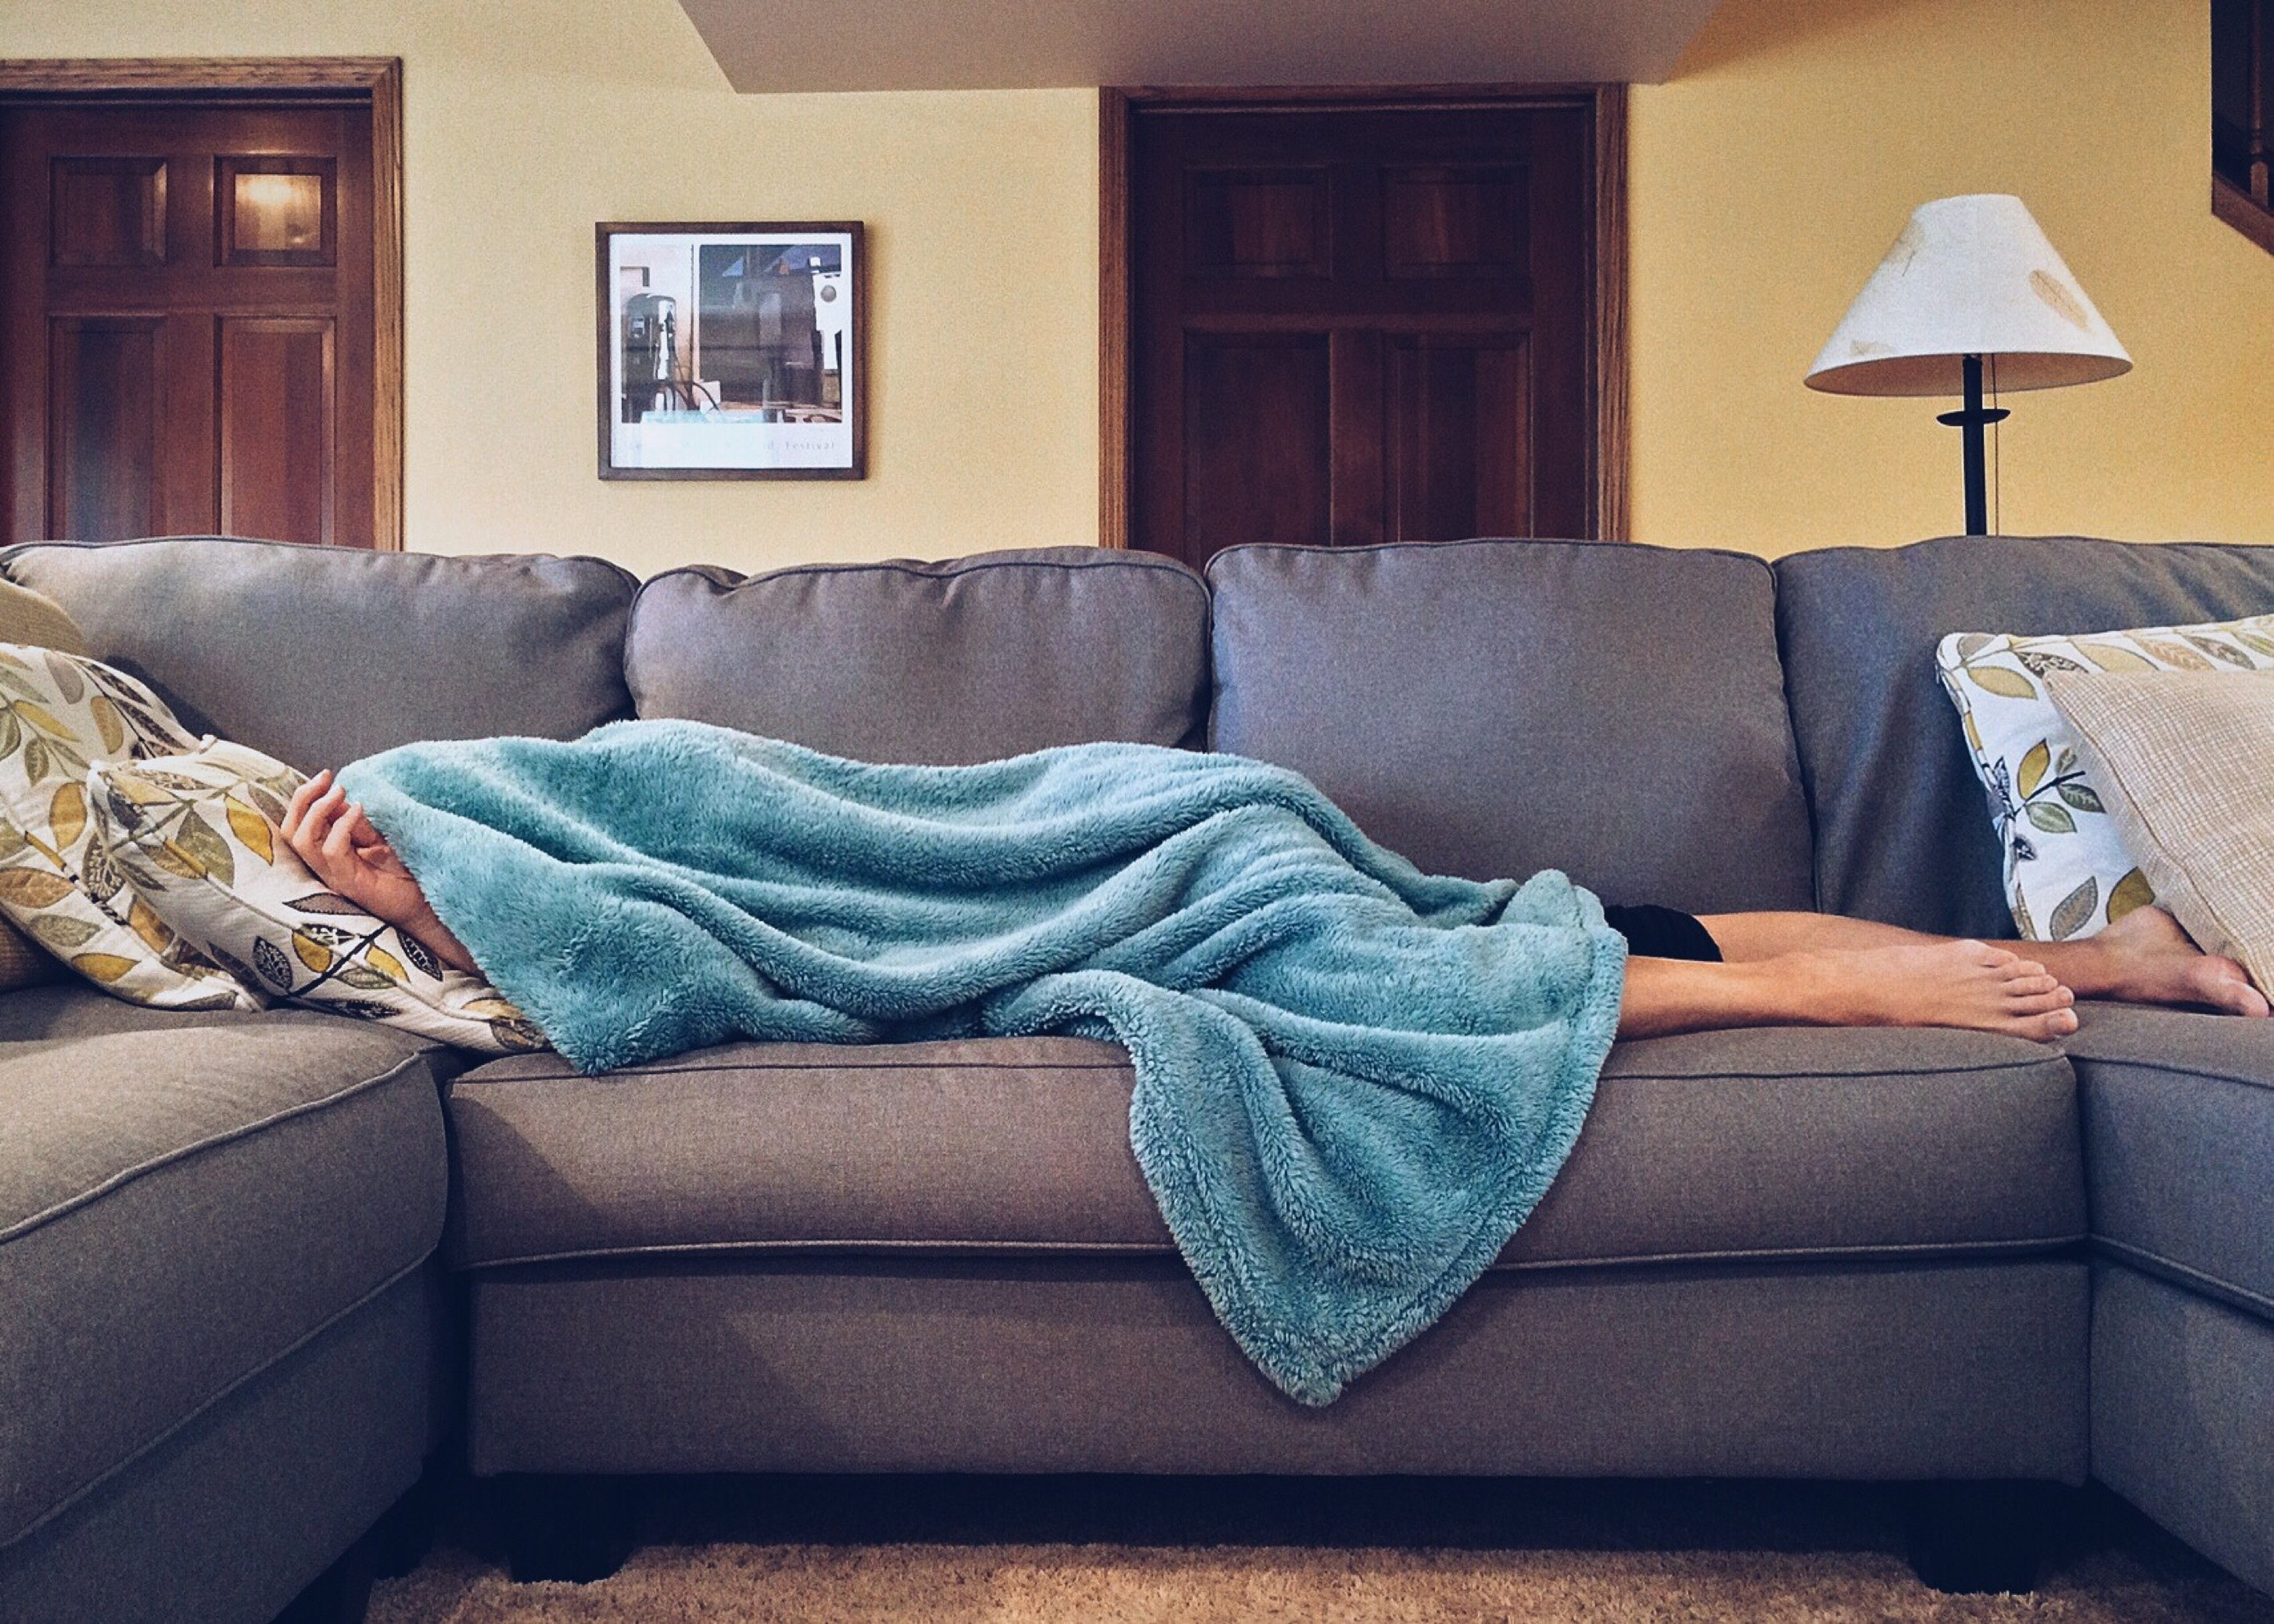 Image result for guy sleeping on couch